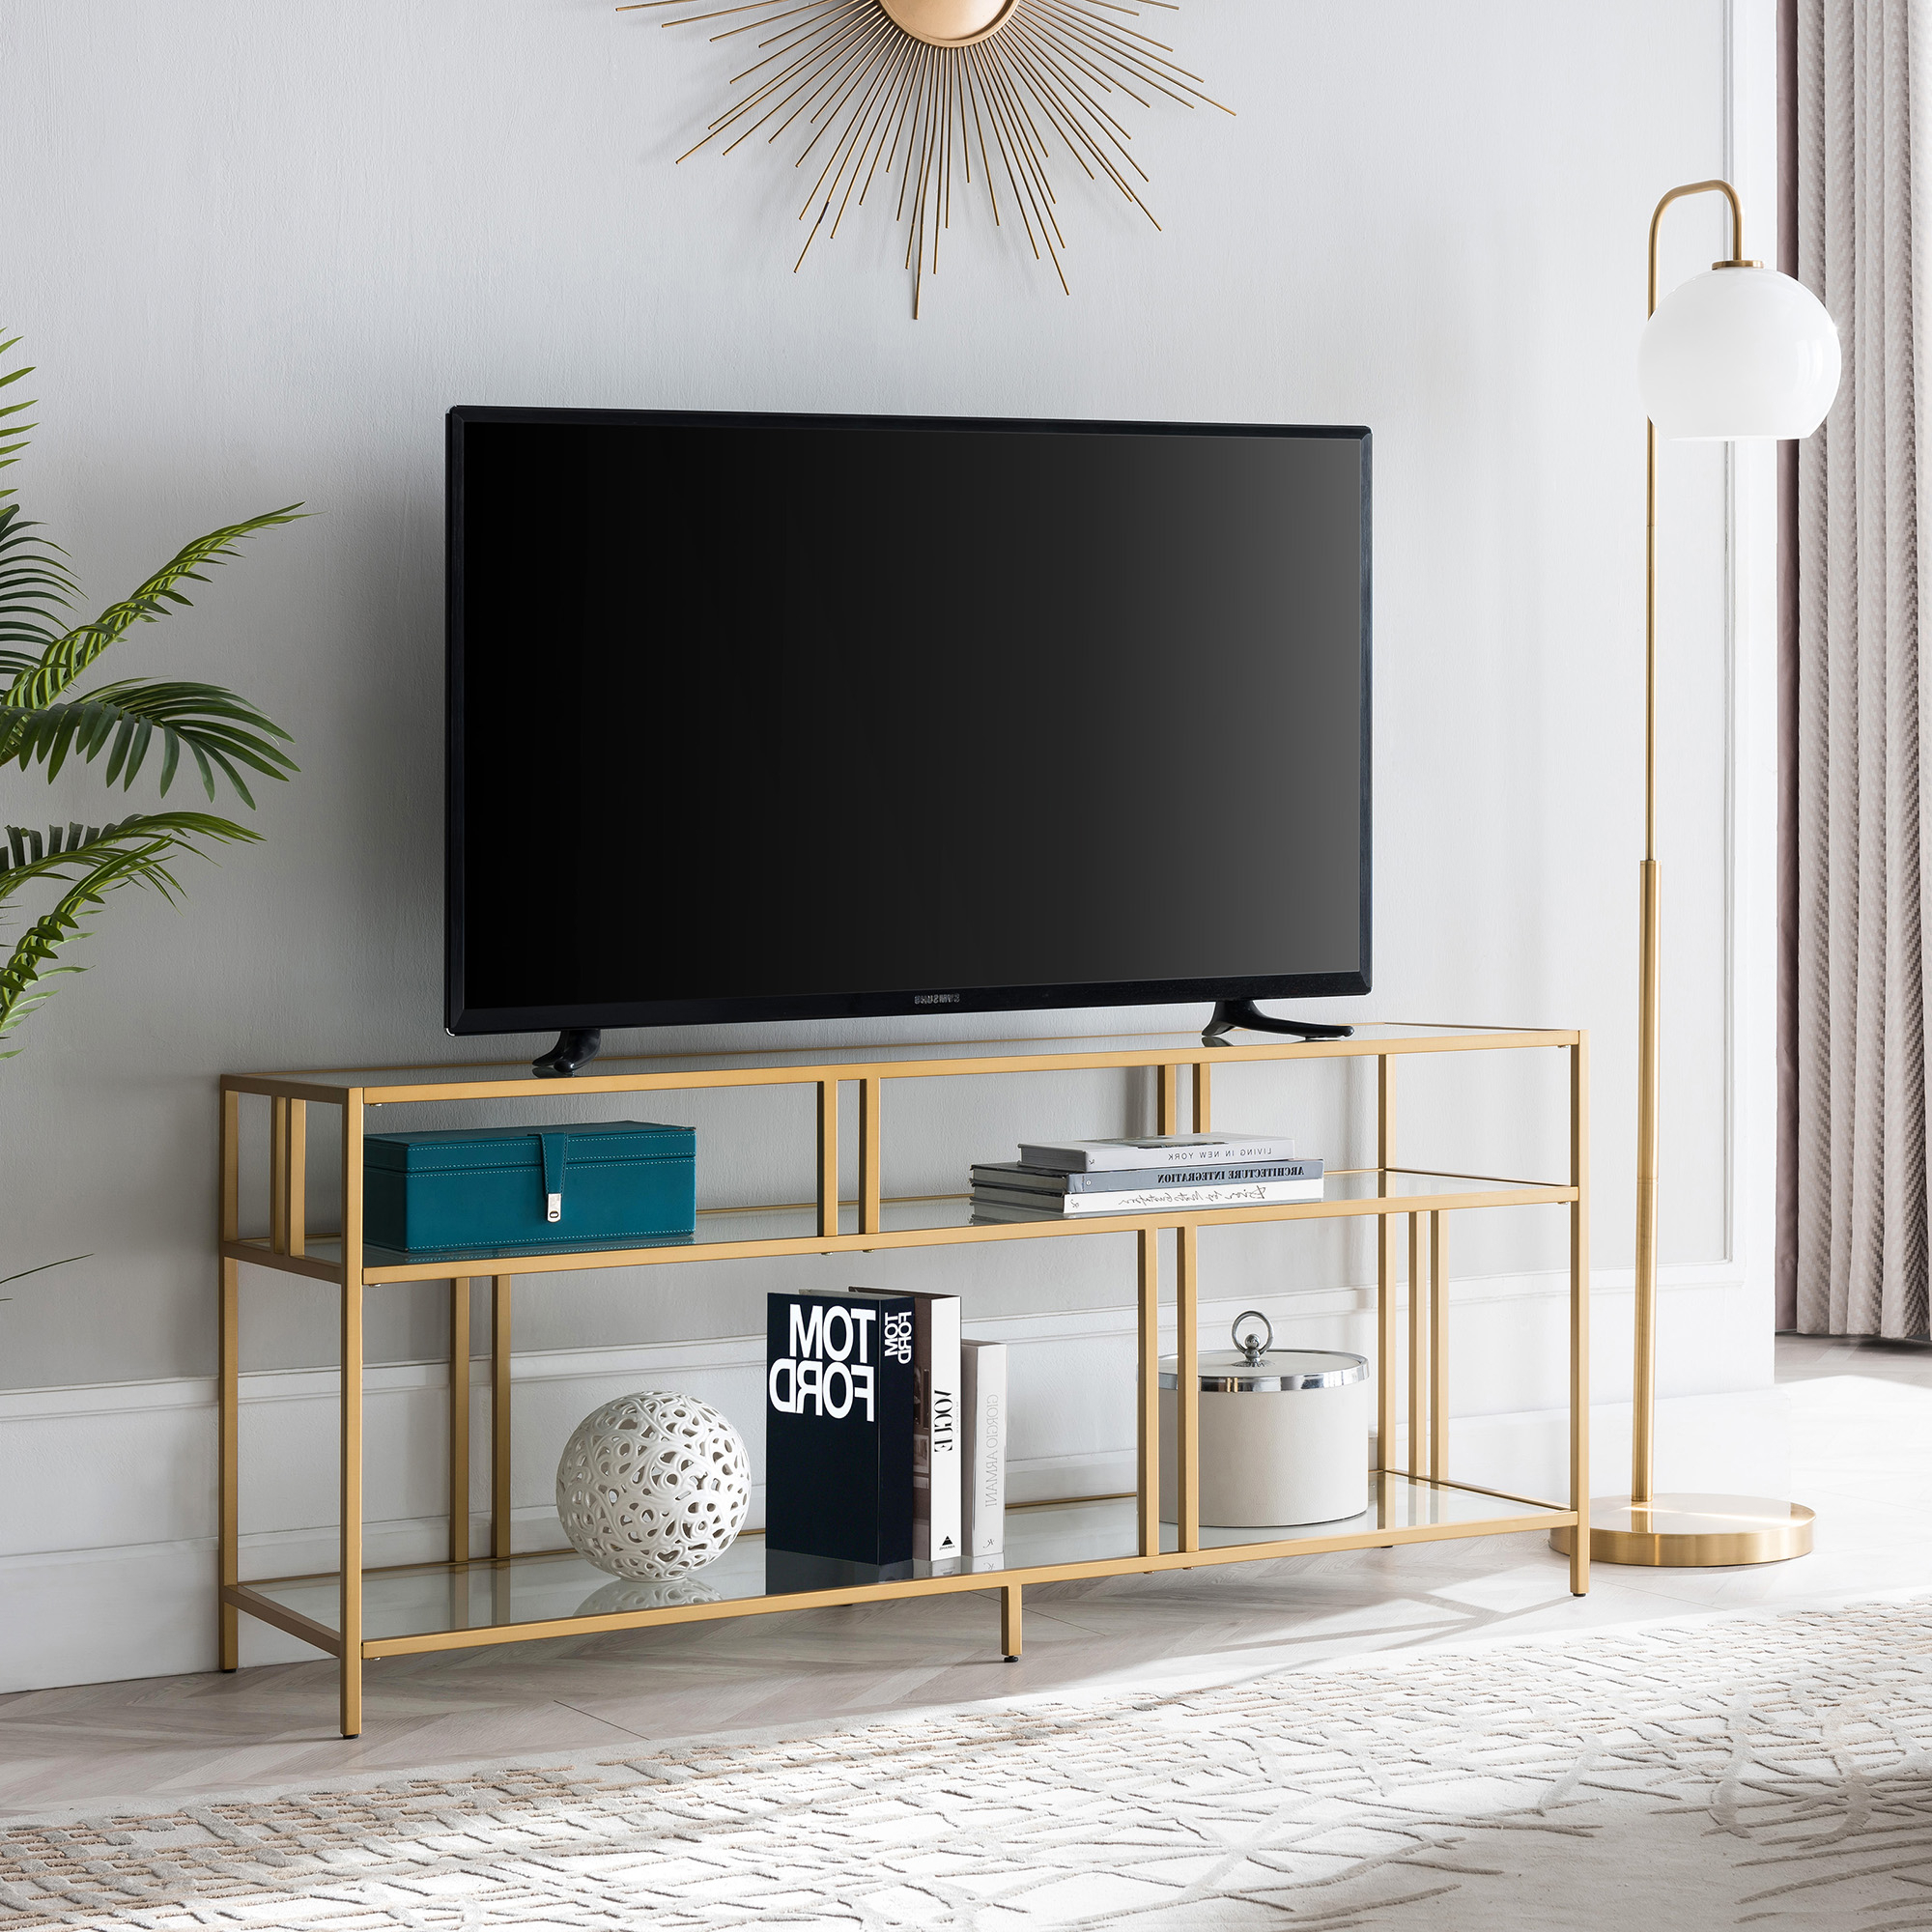 """Best And Newest Modern Metal Tv Stand For Tvs Up To 55"""", Industrial Media Within Twila Tv Stands For Tvs Up To 55"""" (View 2 of 25)"""